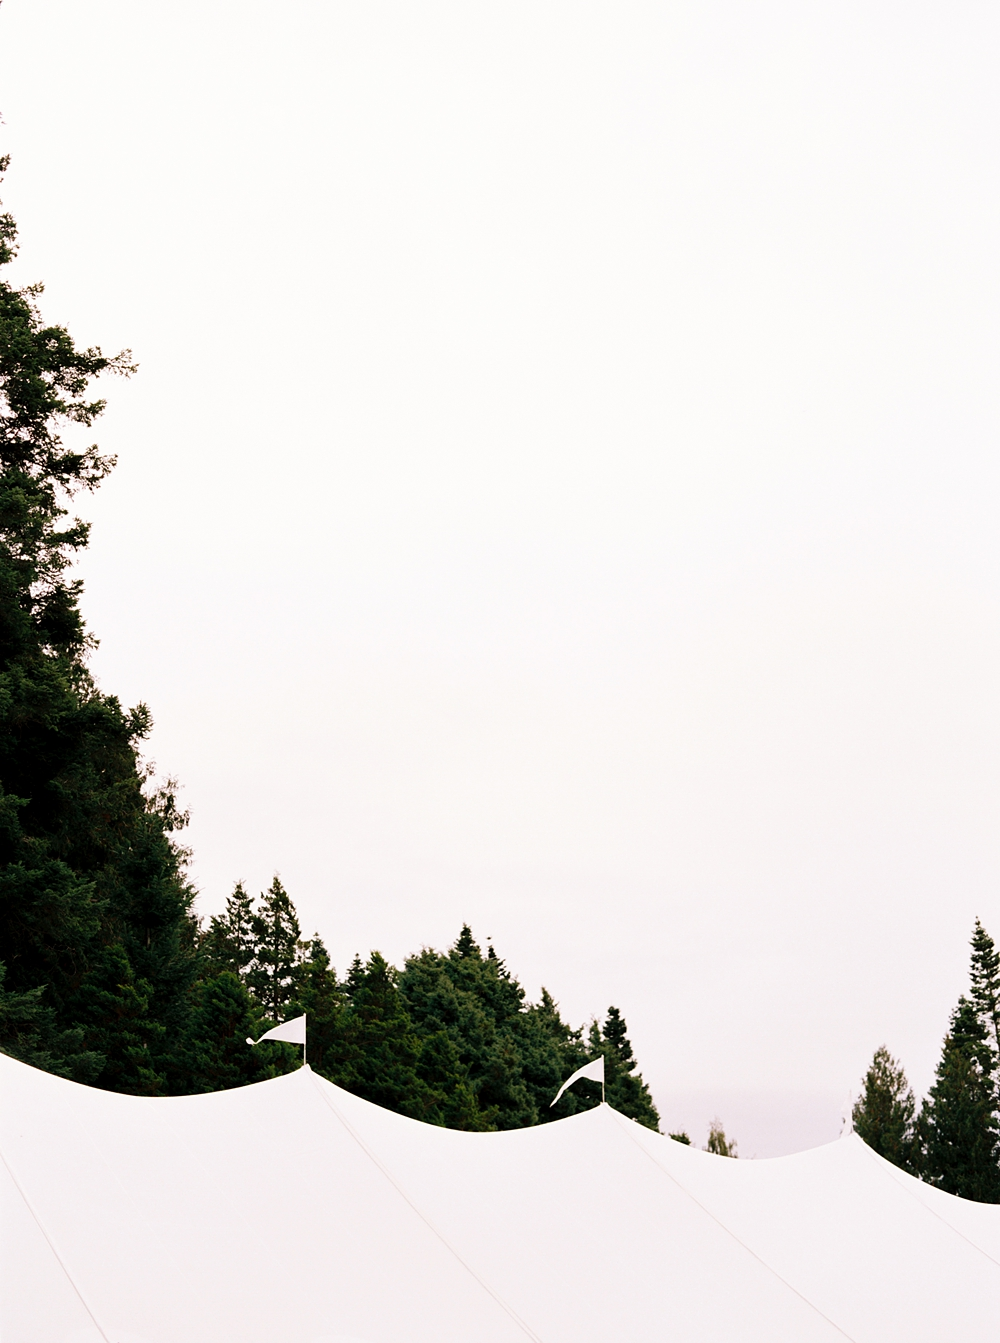 Top of the sailcloth tent with evergreen trees in the backgroun